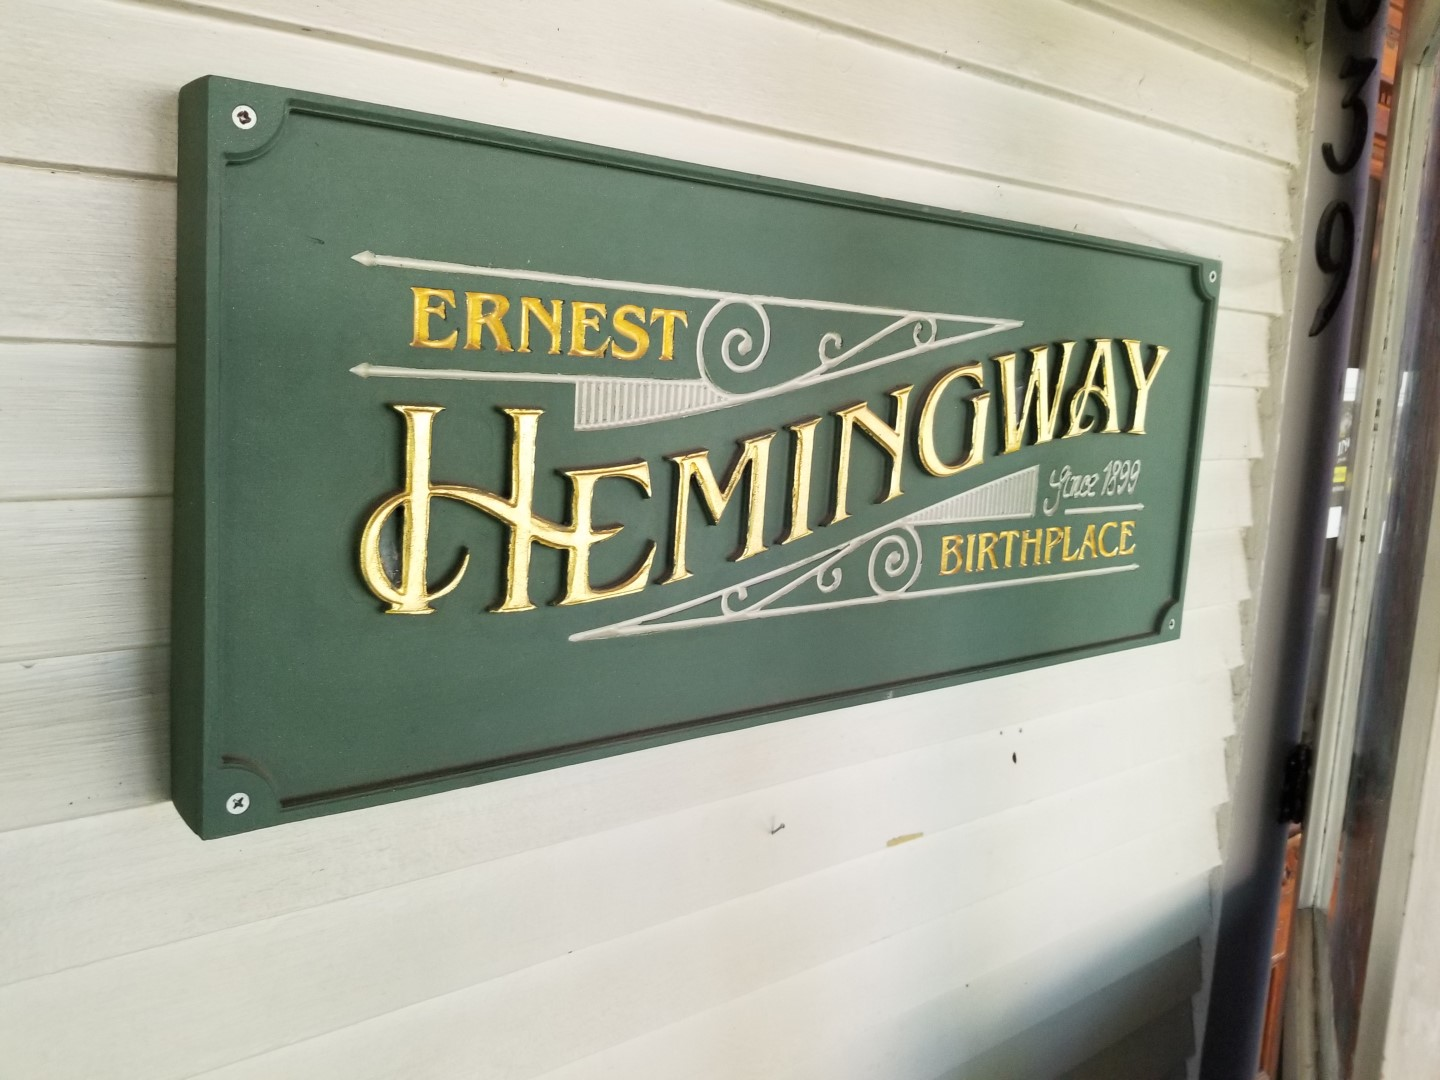 Ernest Hemingway Birthplace sign near front door